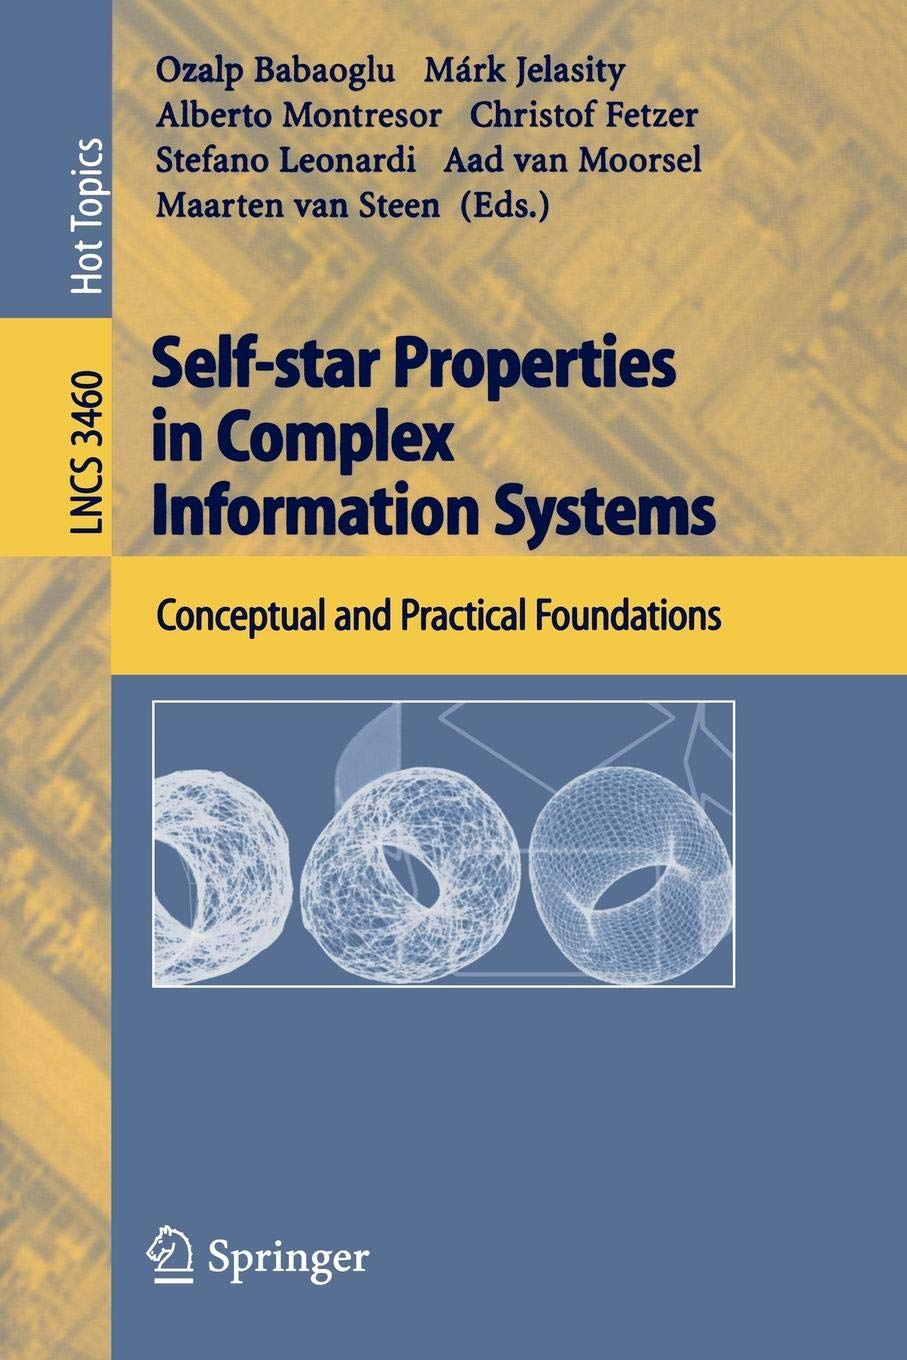 Self-star Properties in Complex Information